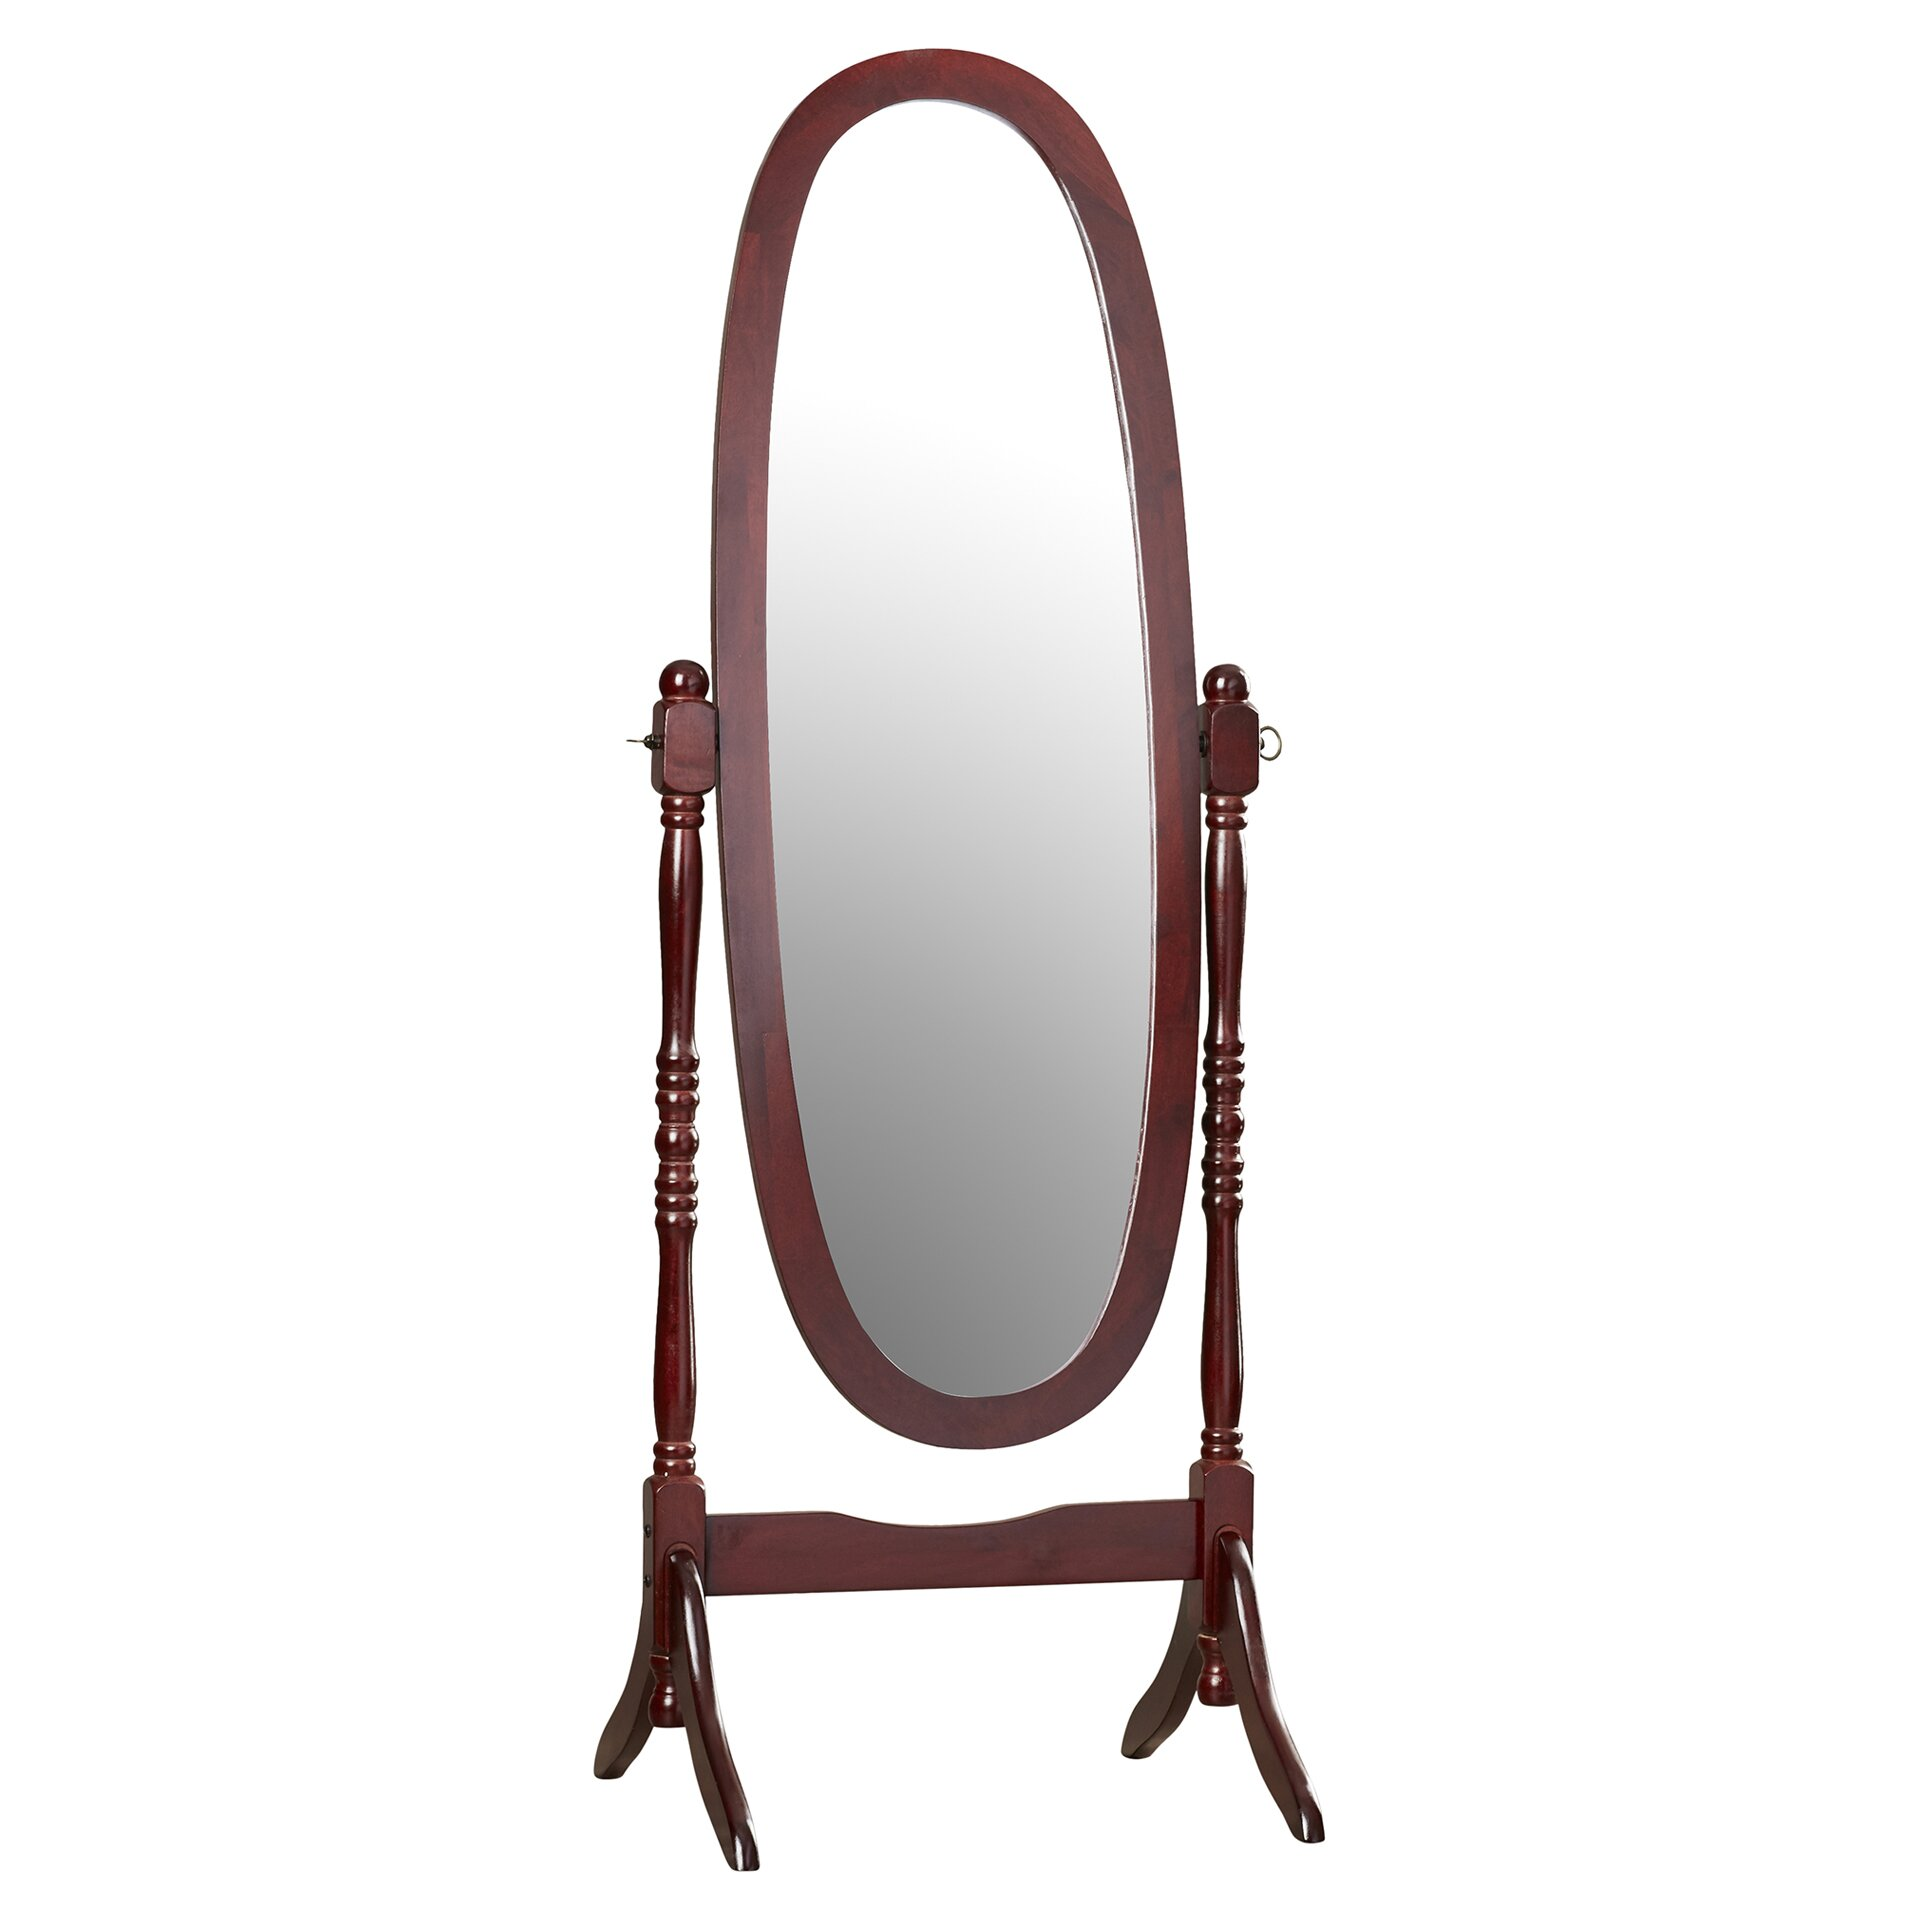 Darby home co redmond cheval mirror reviews wayfair for Cheval mirror